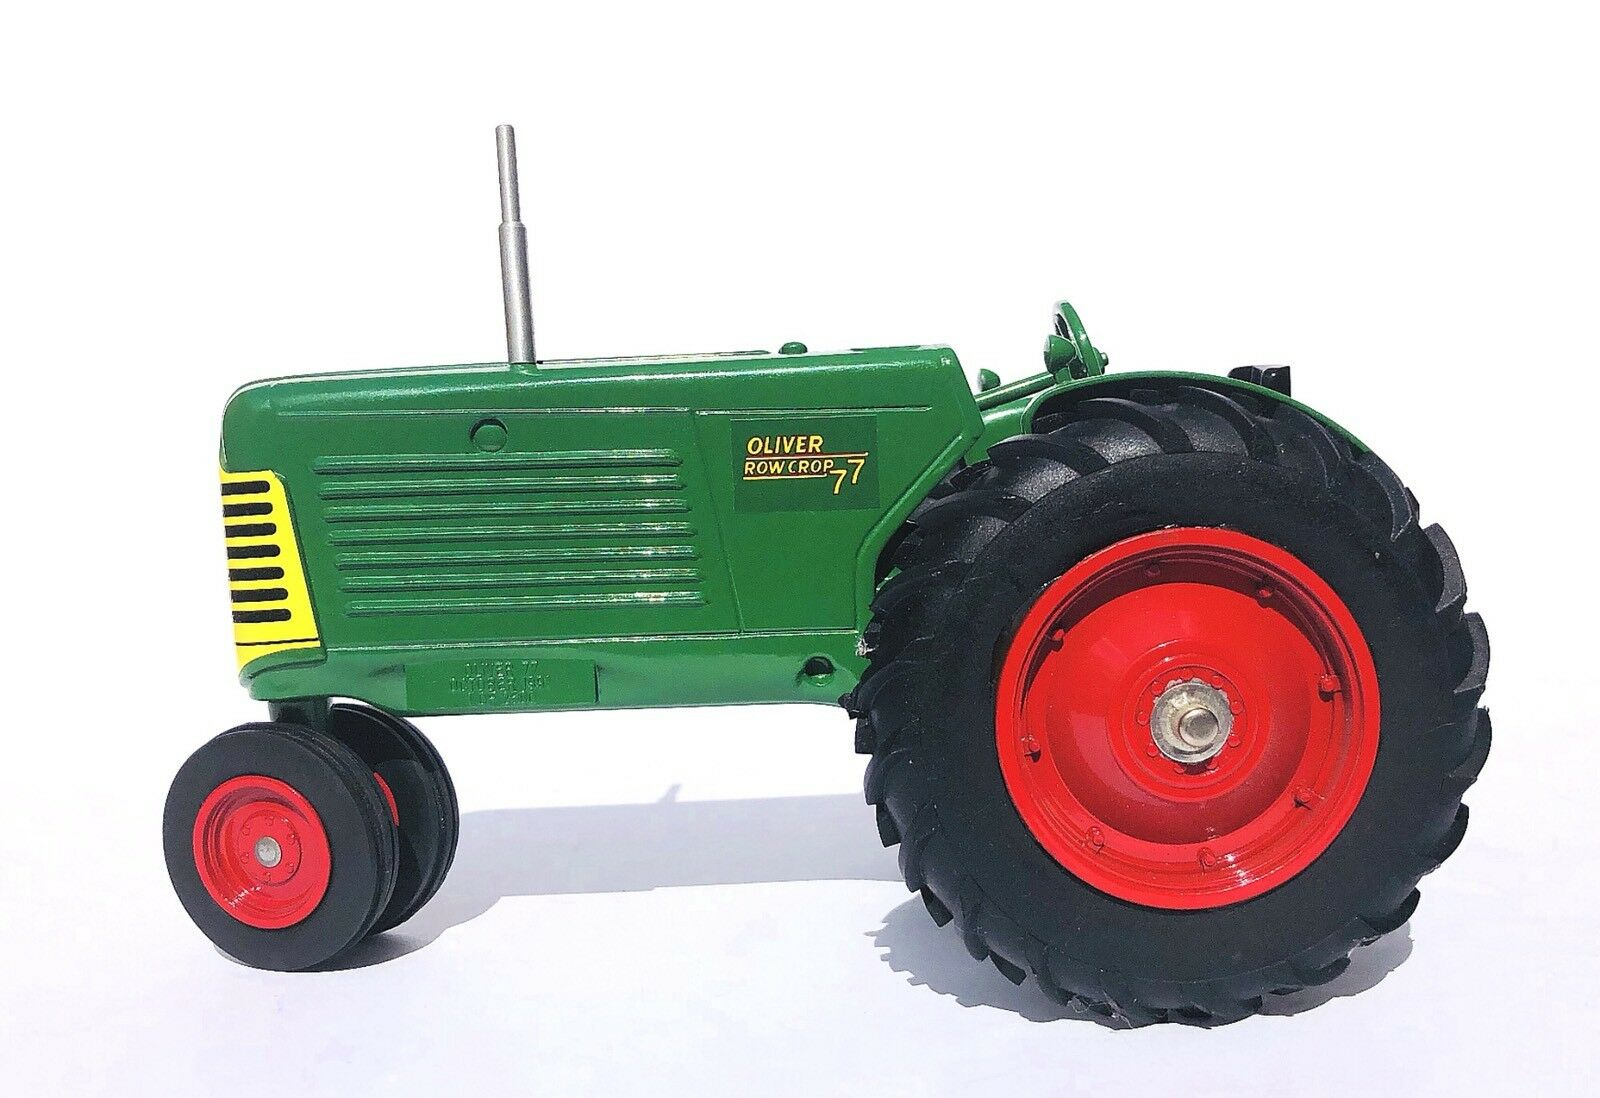 hight resolution of spec cast oliver row crop 77 tractor 1 16 scale 1991 october 1 of 6free shipping see more